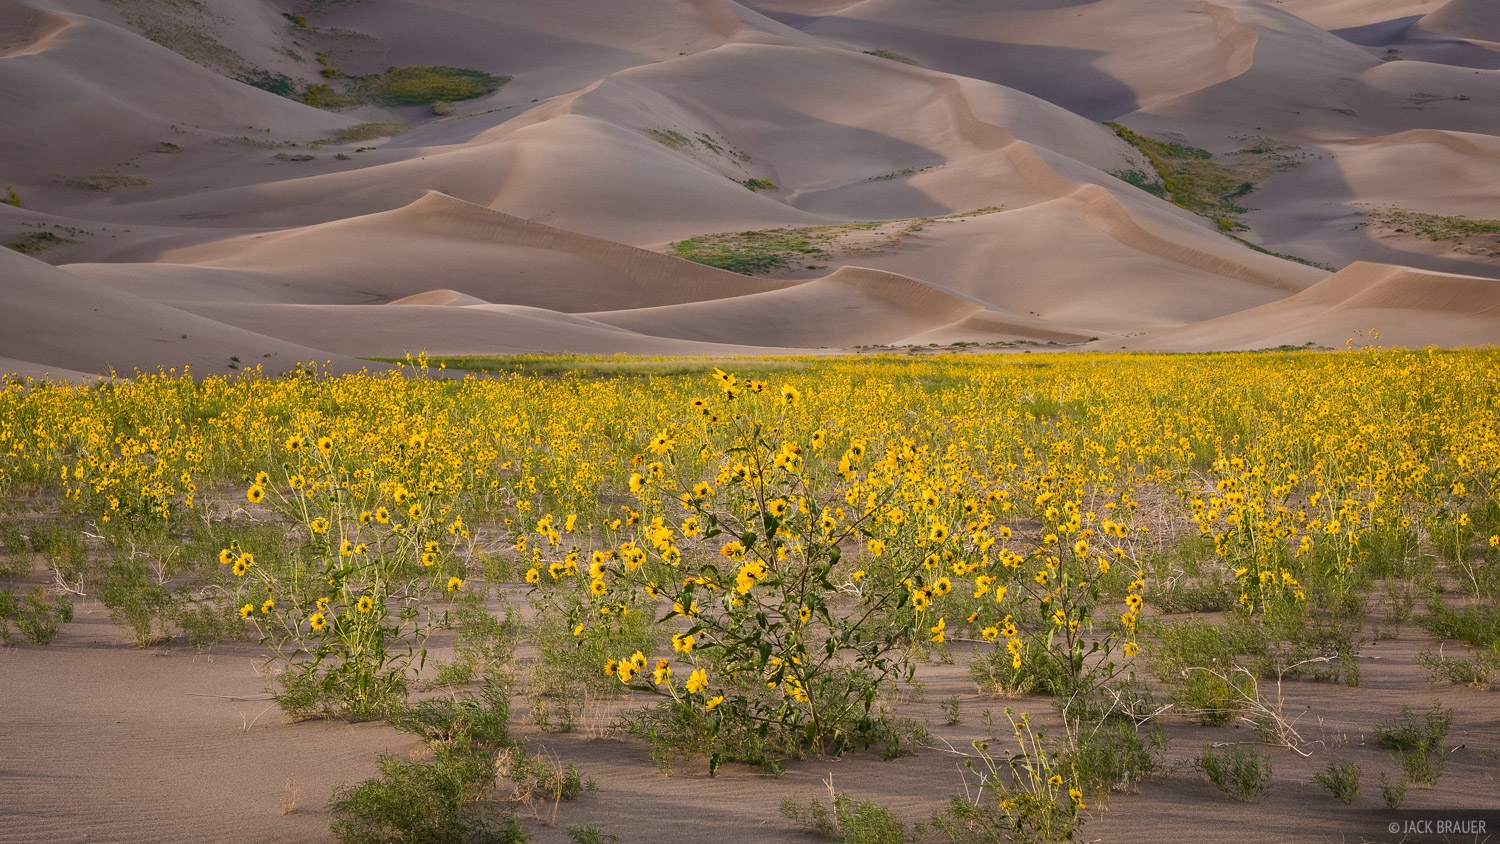 Praire sunflowers at sunset in the Great Sand Dunes.